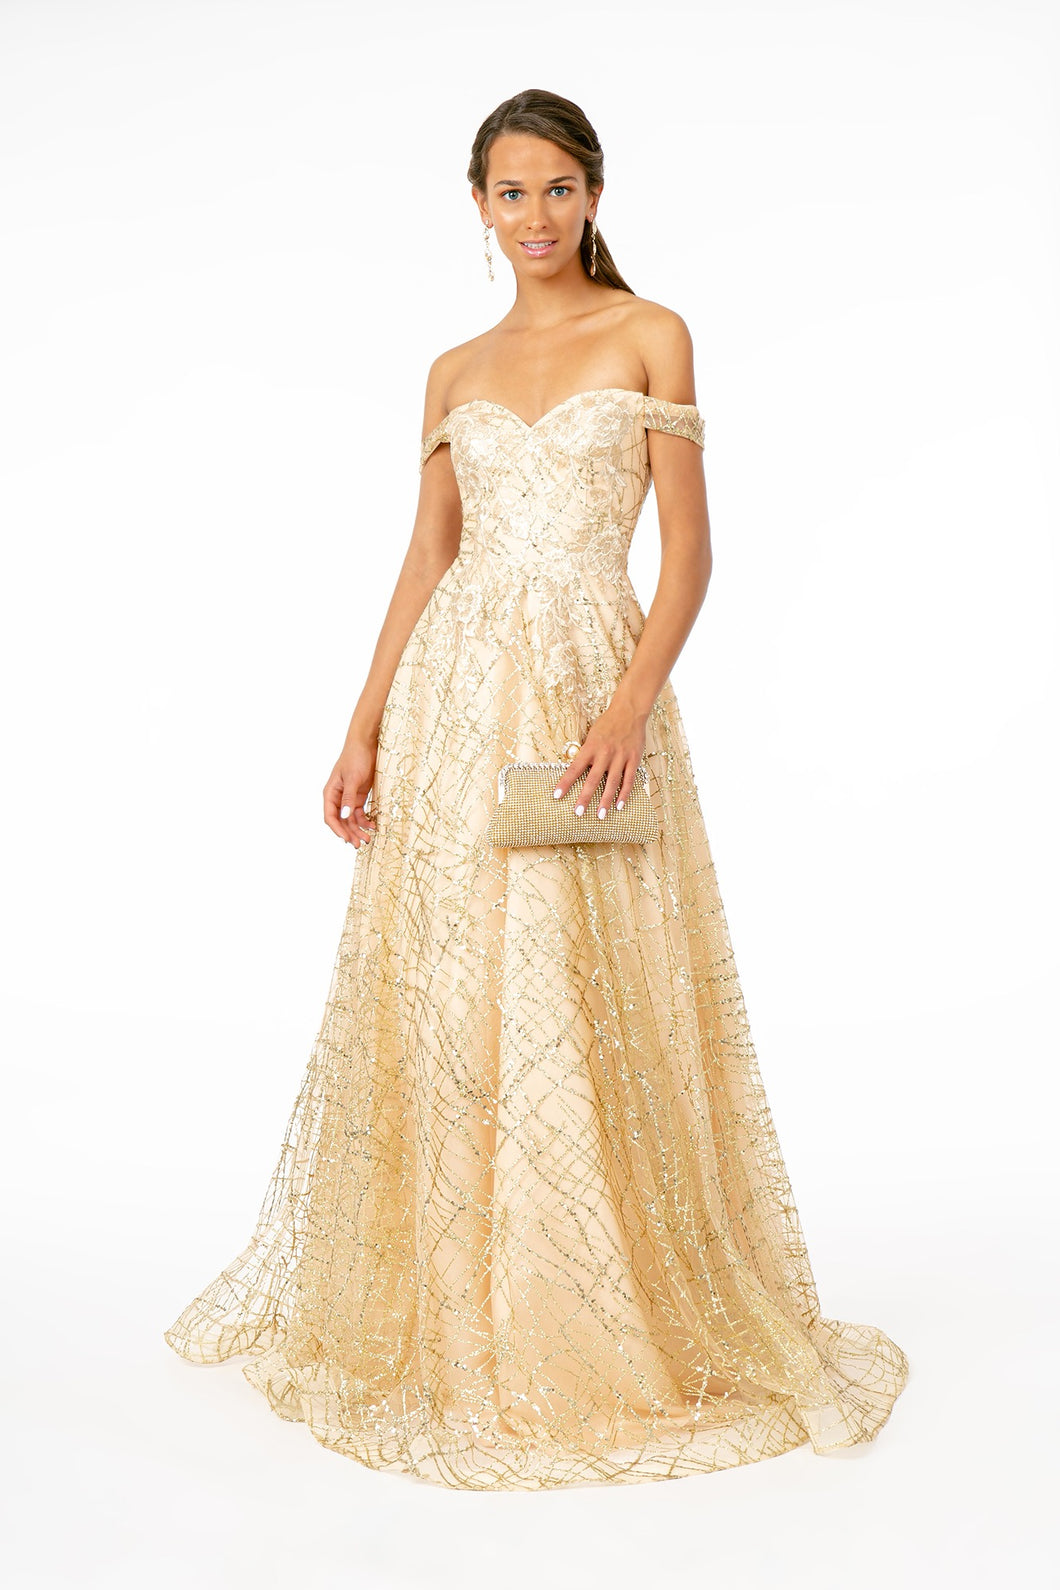 GL 2887 - Floral Embroidered Off the Shoulder A-Line Prom Gown with Glitter & Sequin - Diggz Prom